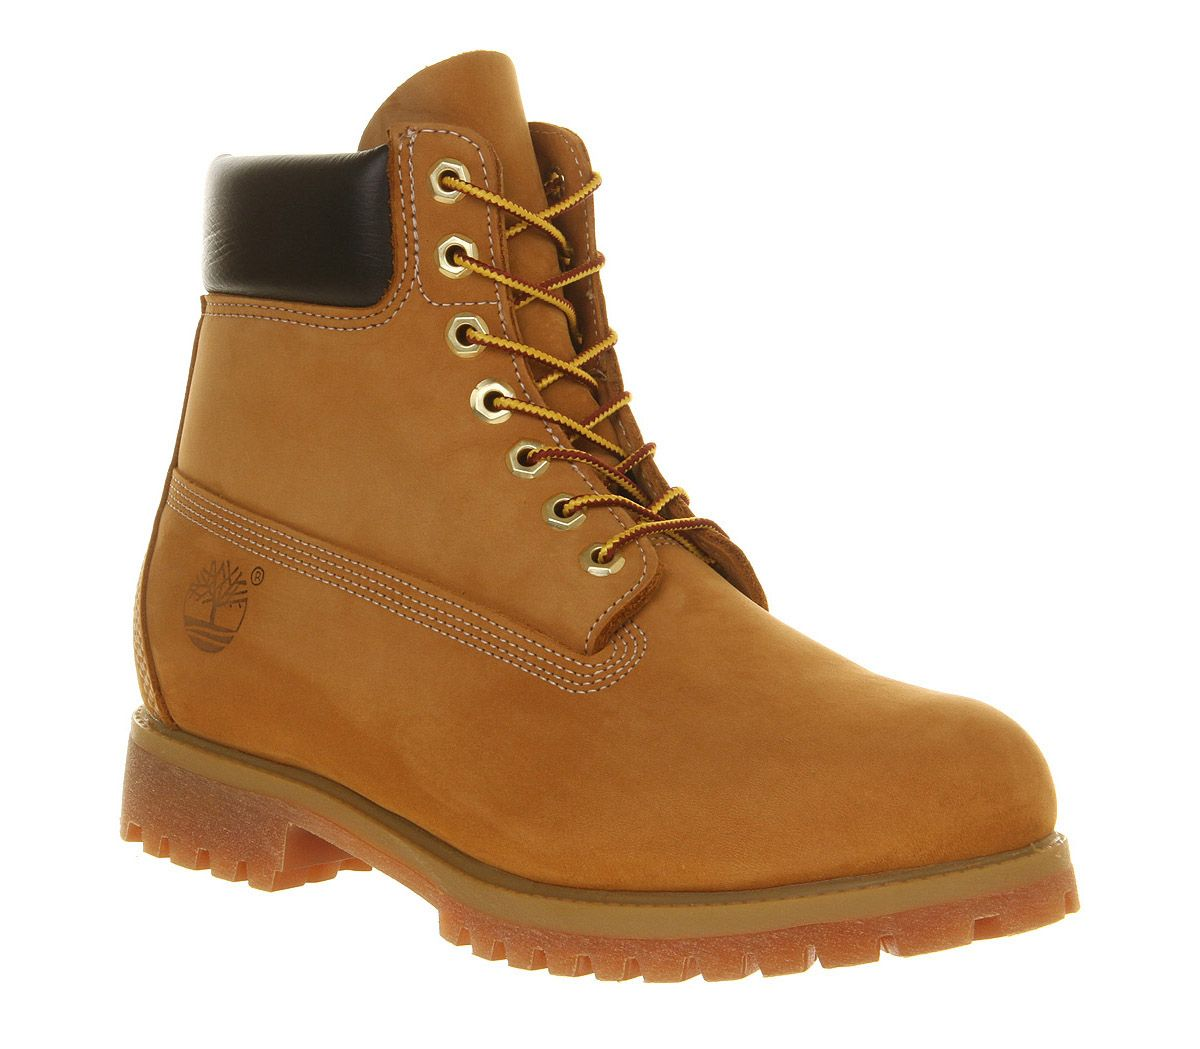 827c4d401bfad Timberland 6 Inch Buck Boots Wheat Nubuck - Boots